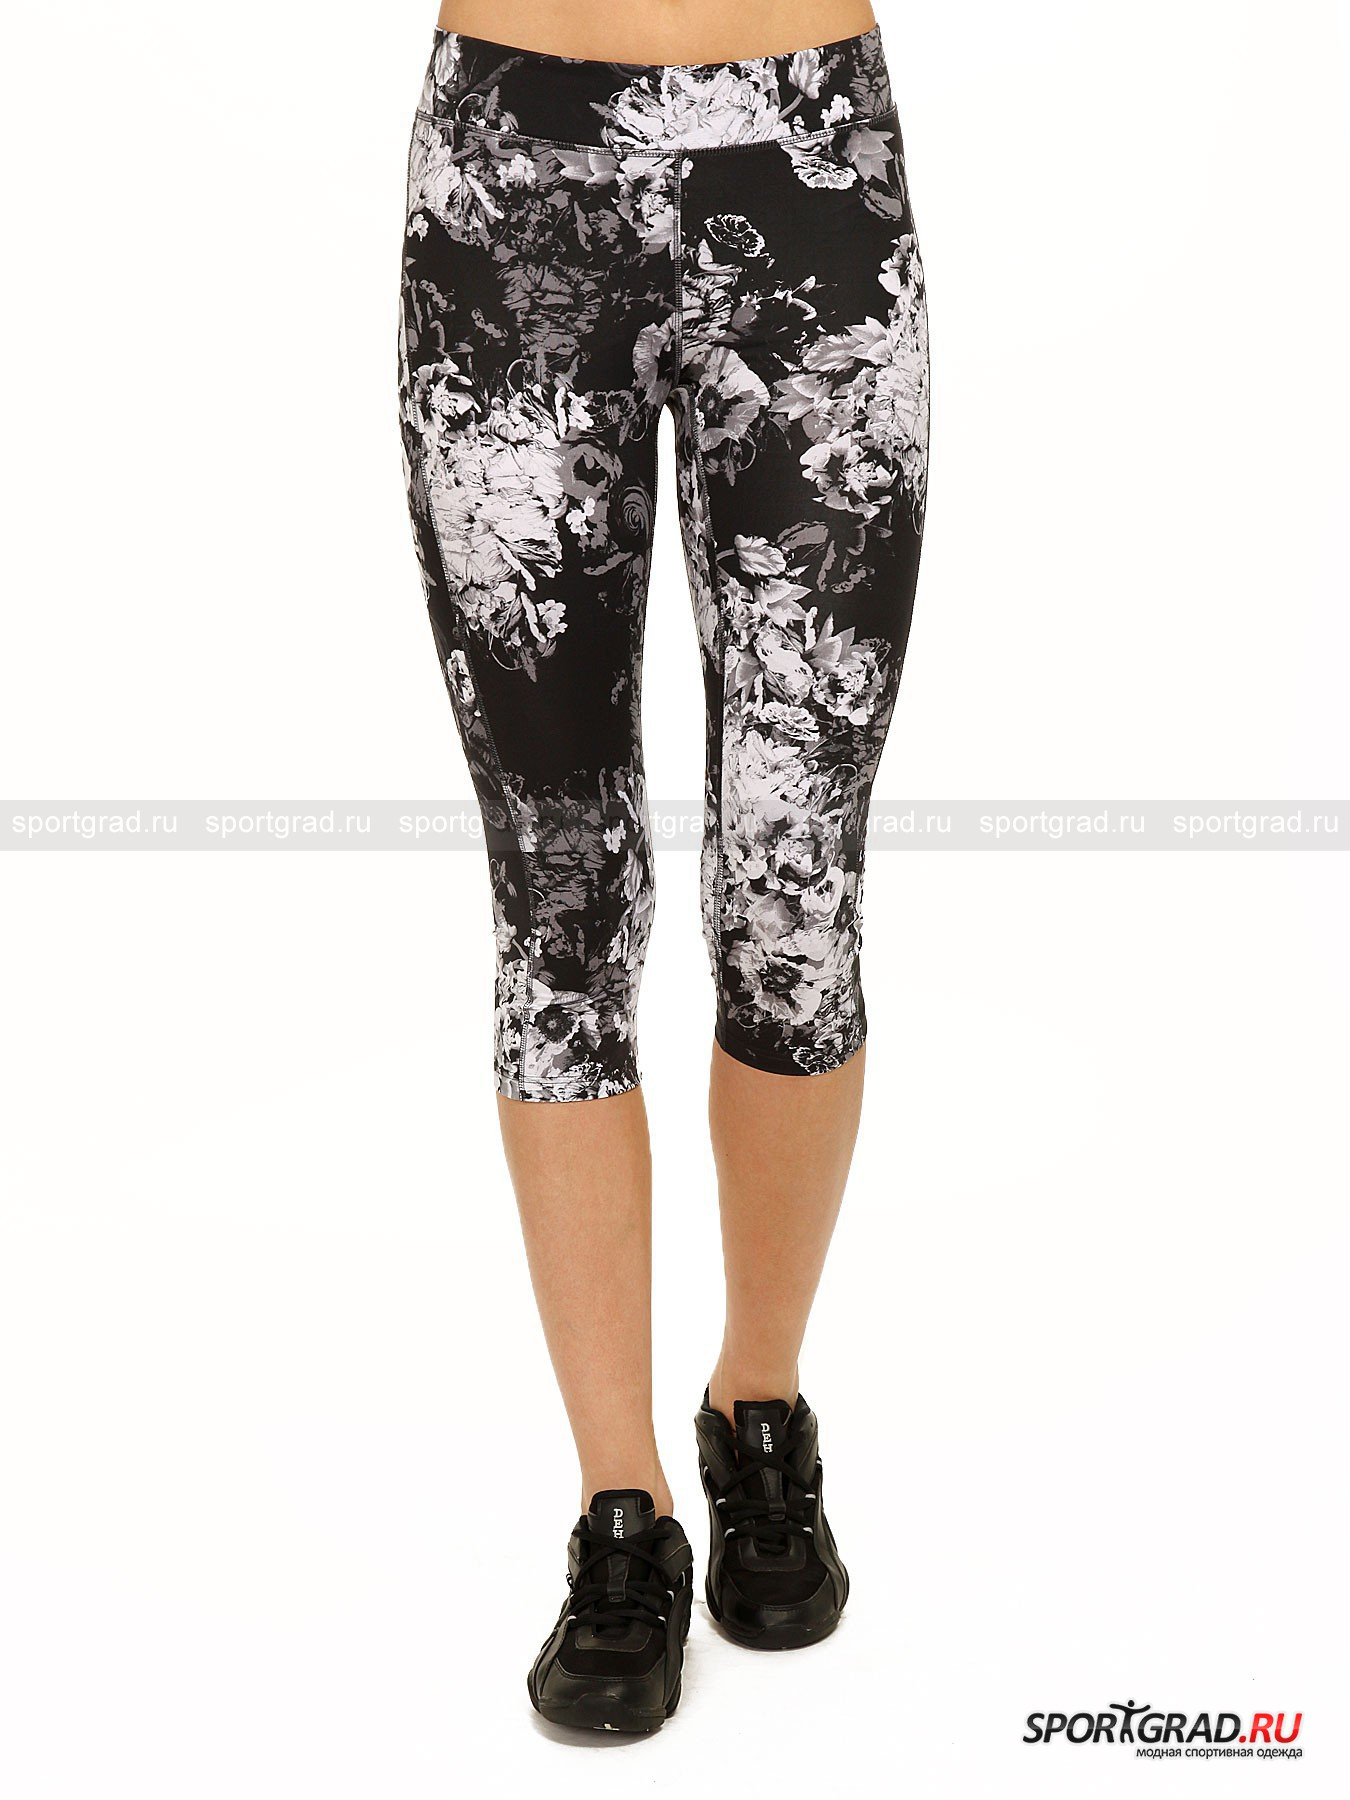 ����� ������� Essential 3/4 tights pant CASALL